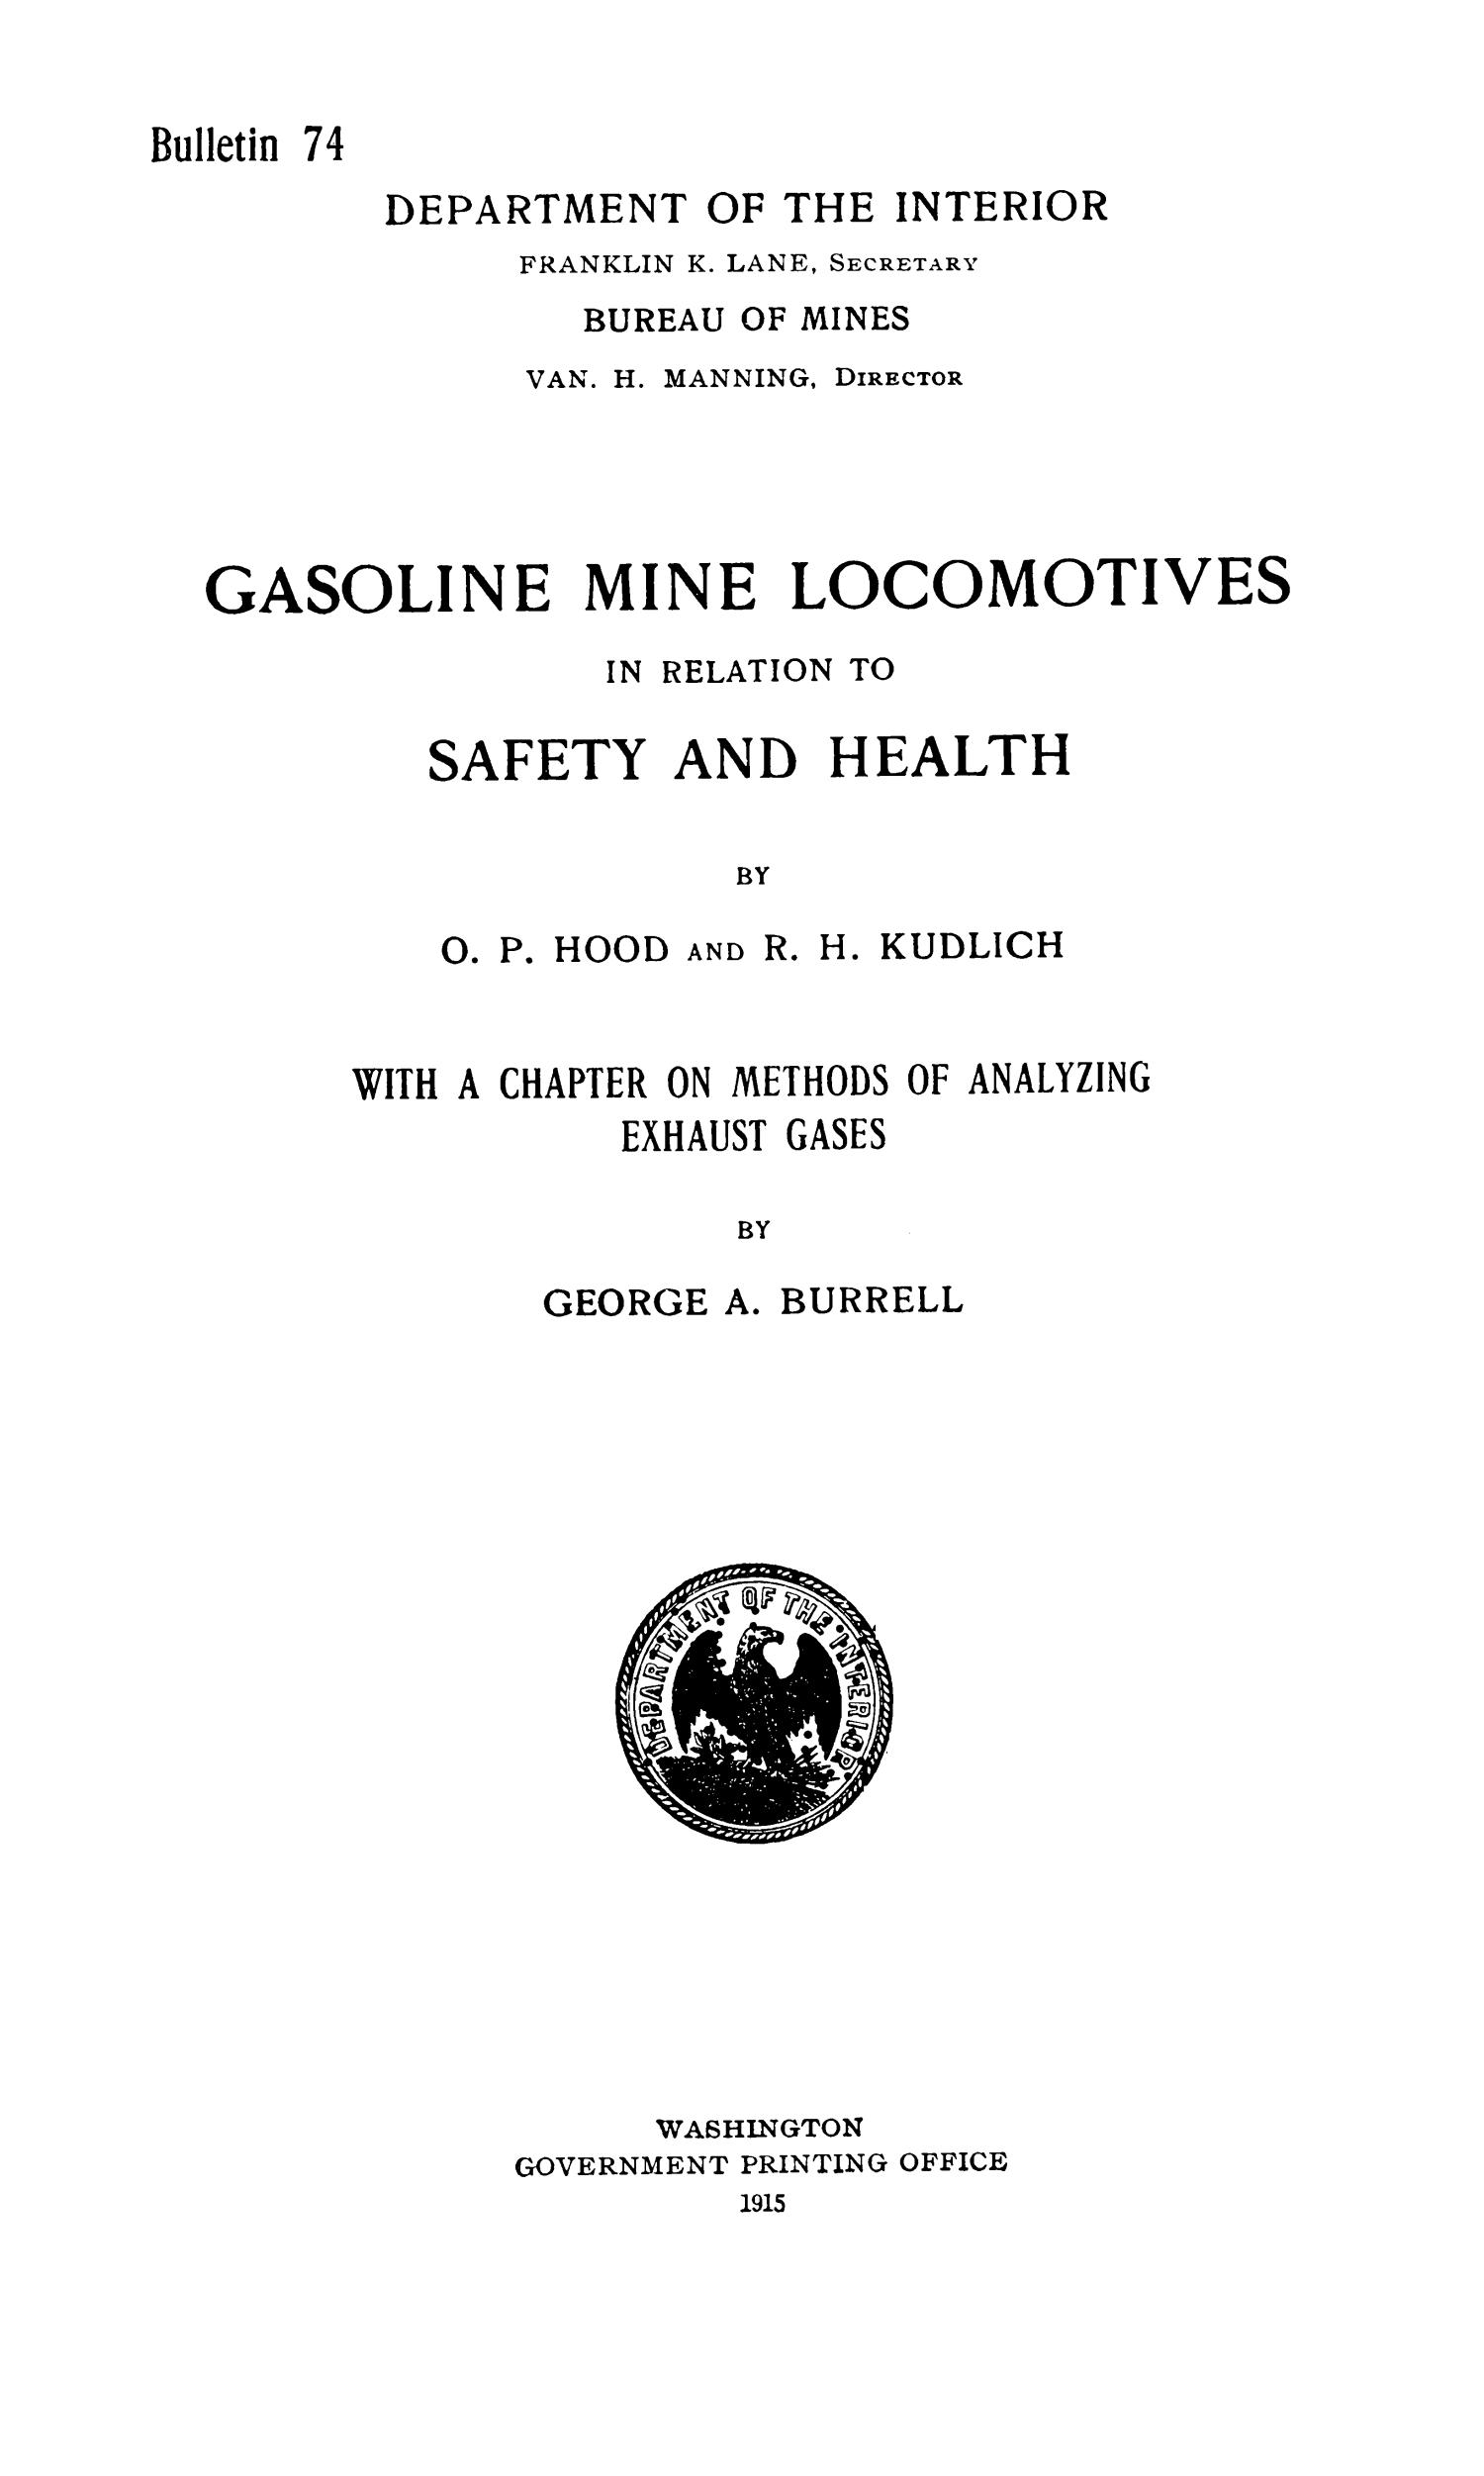 Gasoline Mine Locomotives in Relation to Safety and Health                                                                                                      I